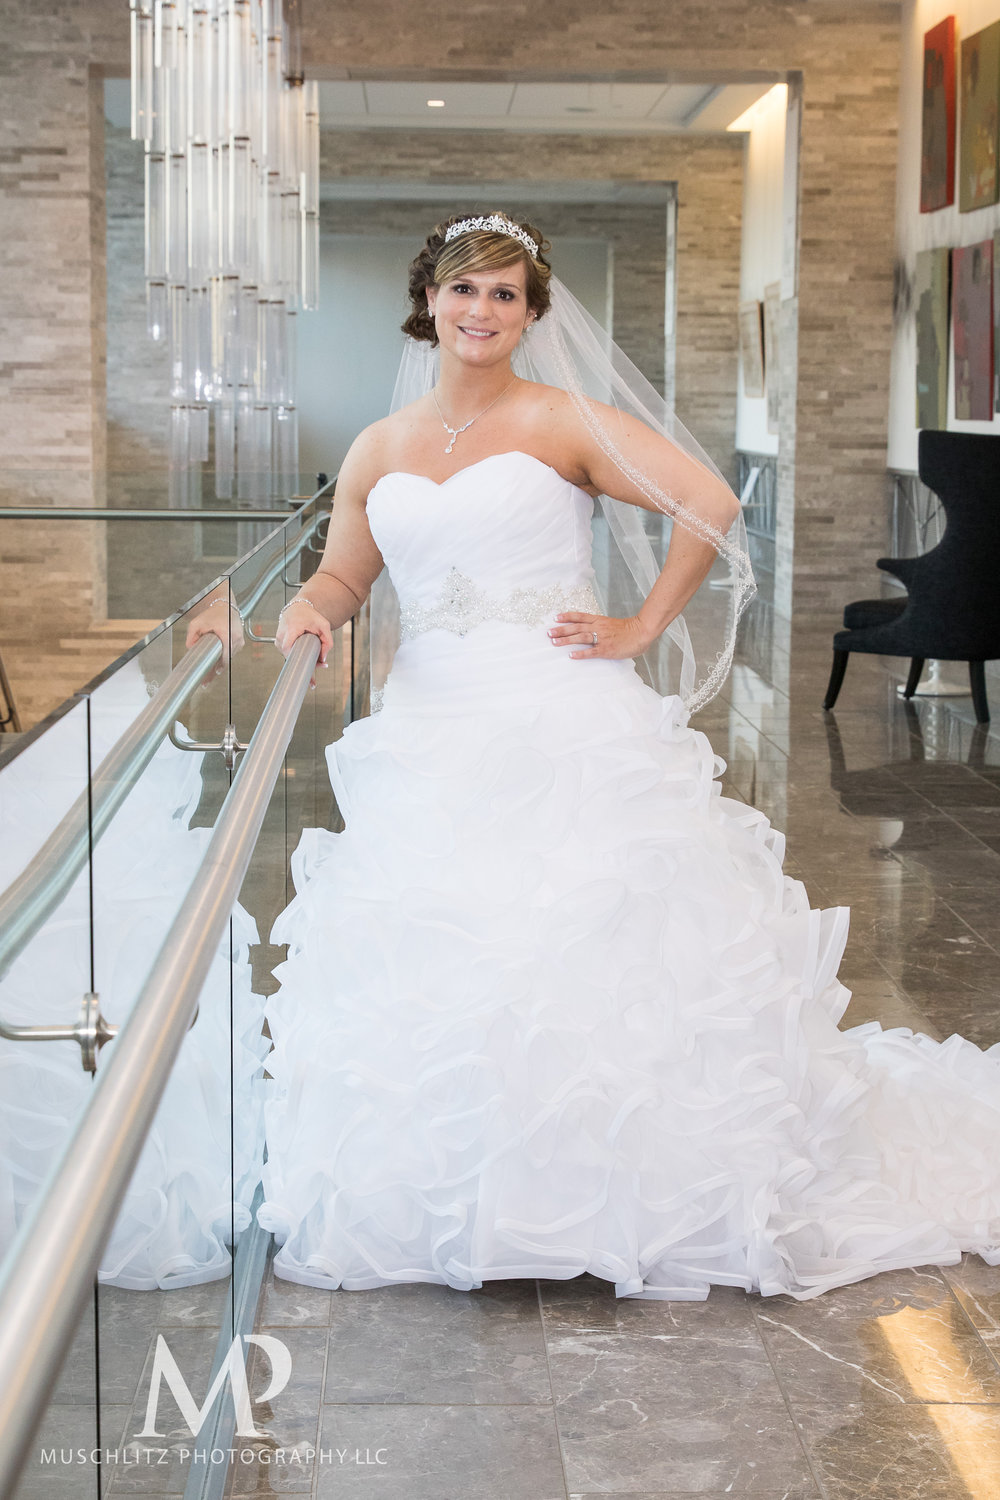 the hilton-columbus-wedding-portraits-downtown-columbus-ohio-muschlitz-photography-009.JPG